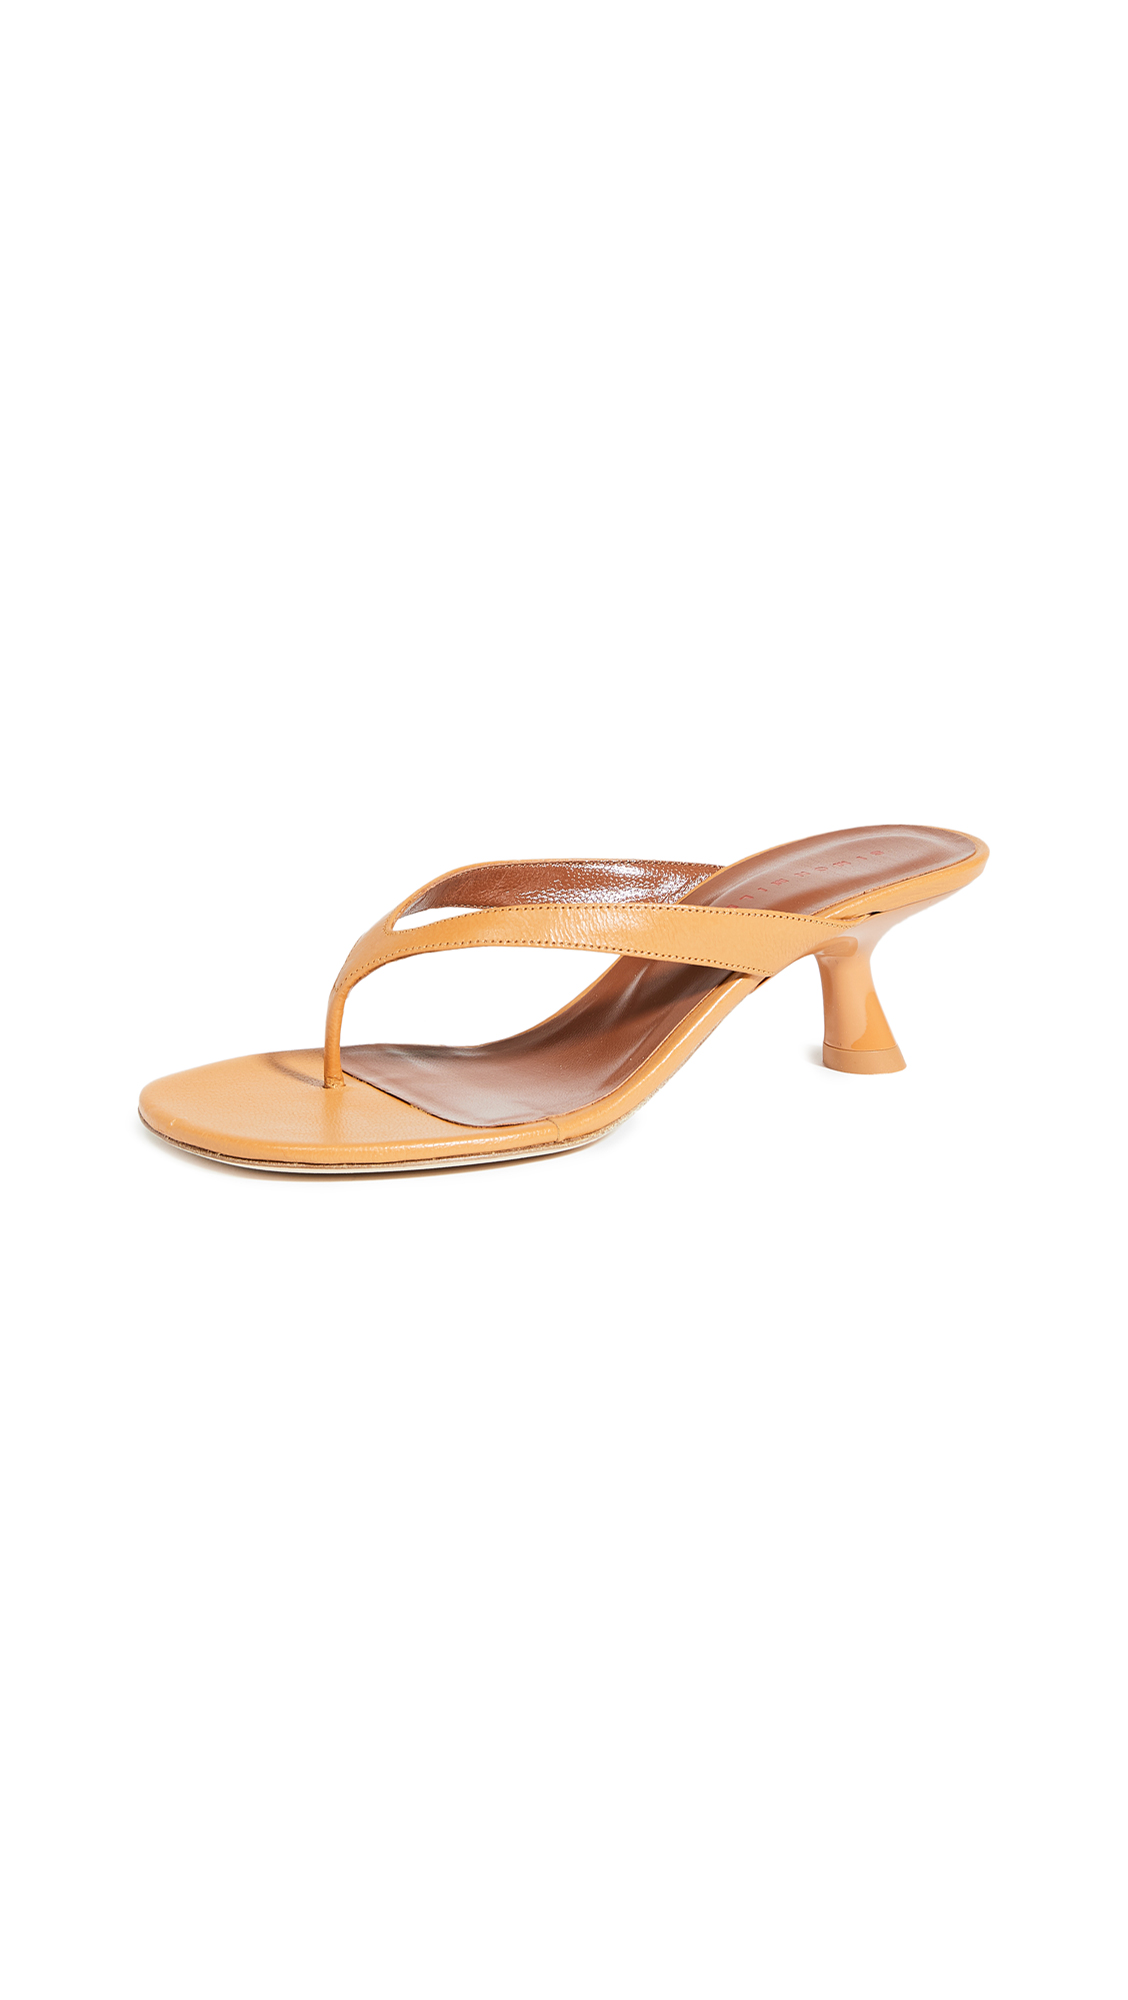 Simon Miller Beep Thong Sandals - 30% Off Sale